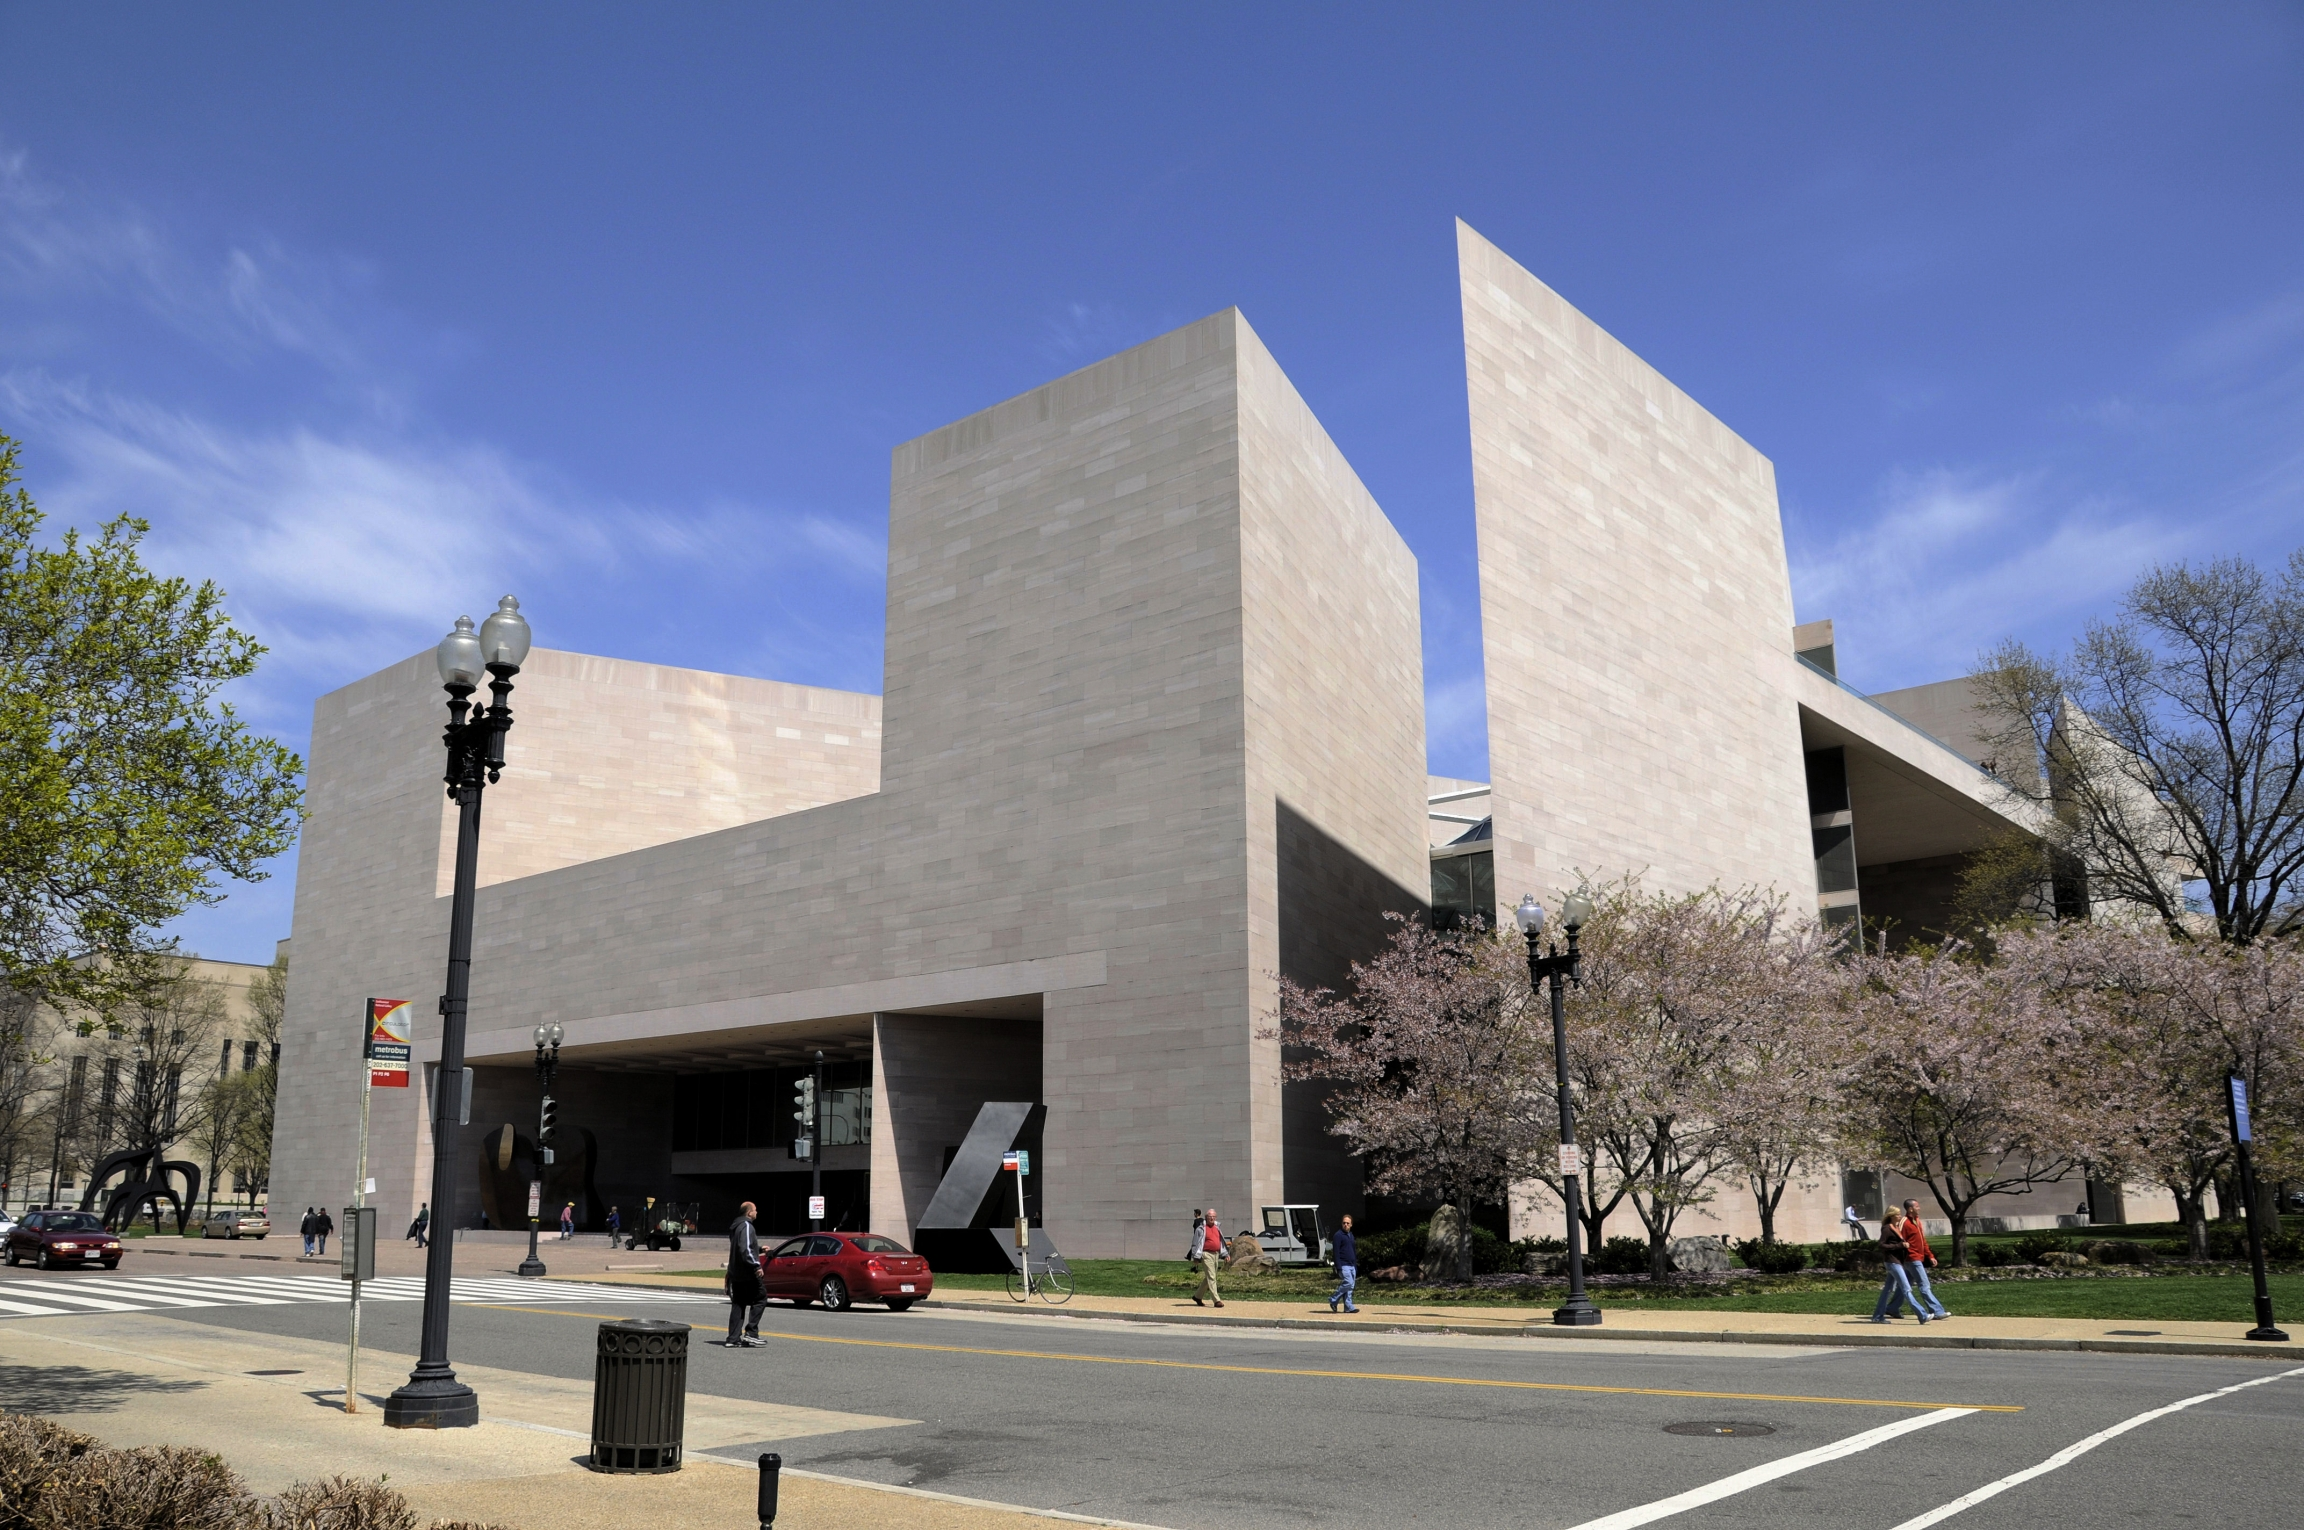 A street side view of the East Building in the National Gallery of Art.